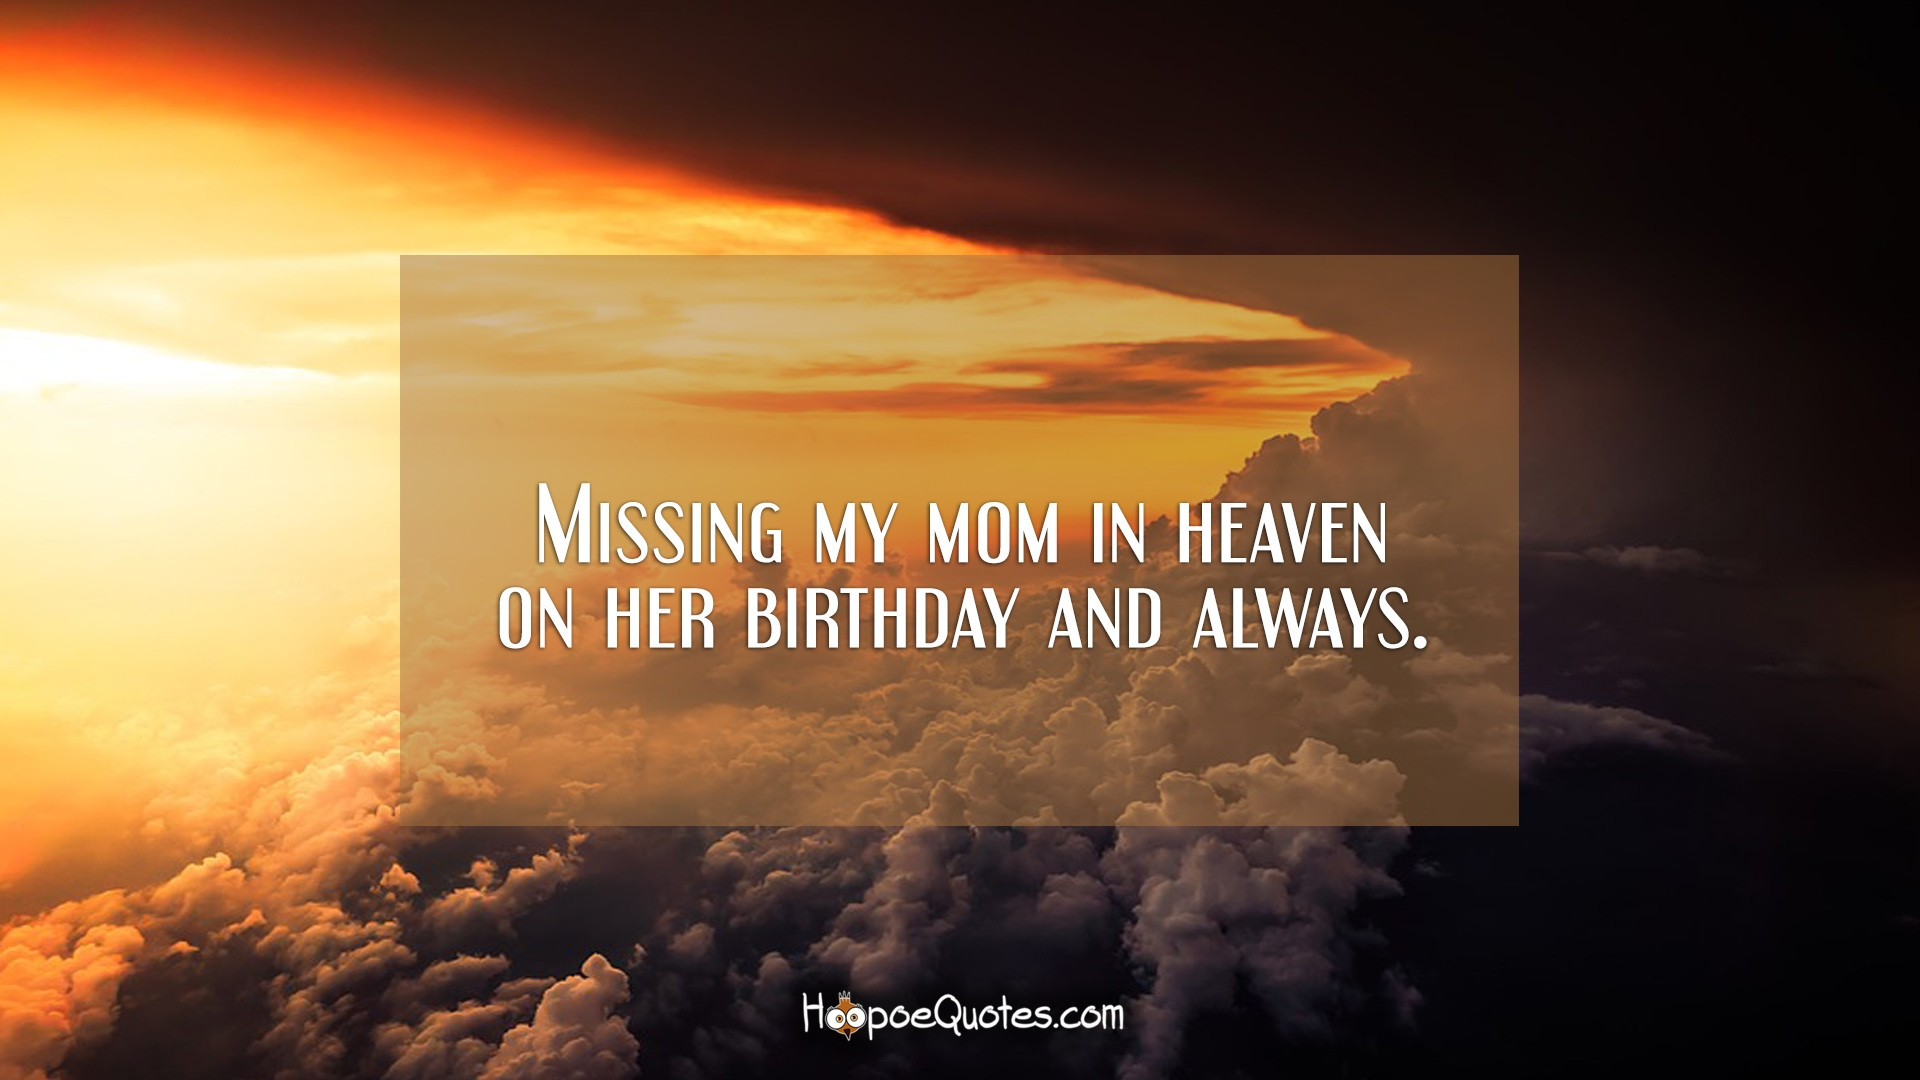 Missing My Mom In Heaven On Her Birthday And Always Hoopoequotes